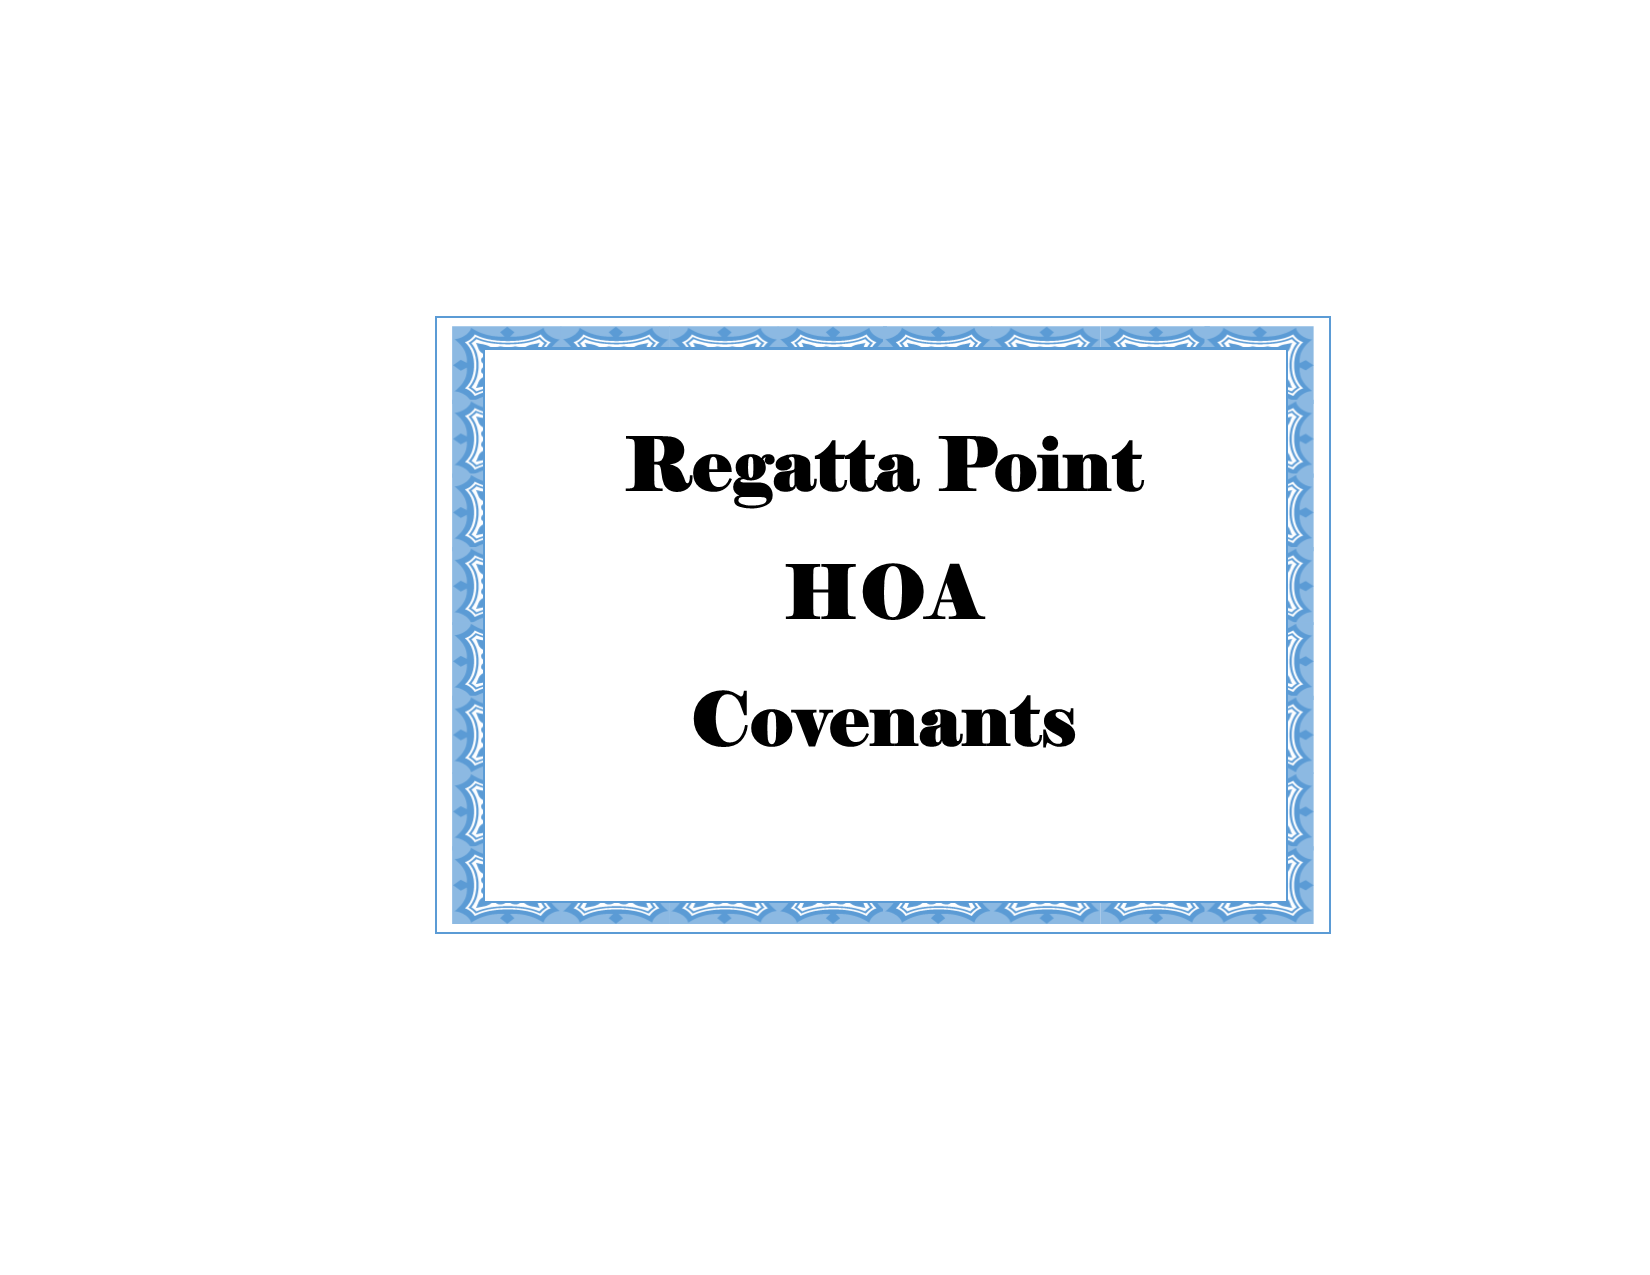 Regatta Point HOA